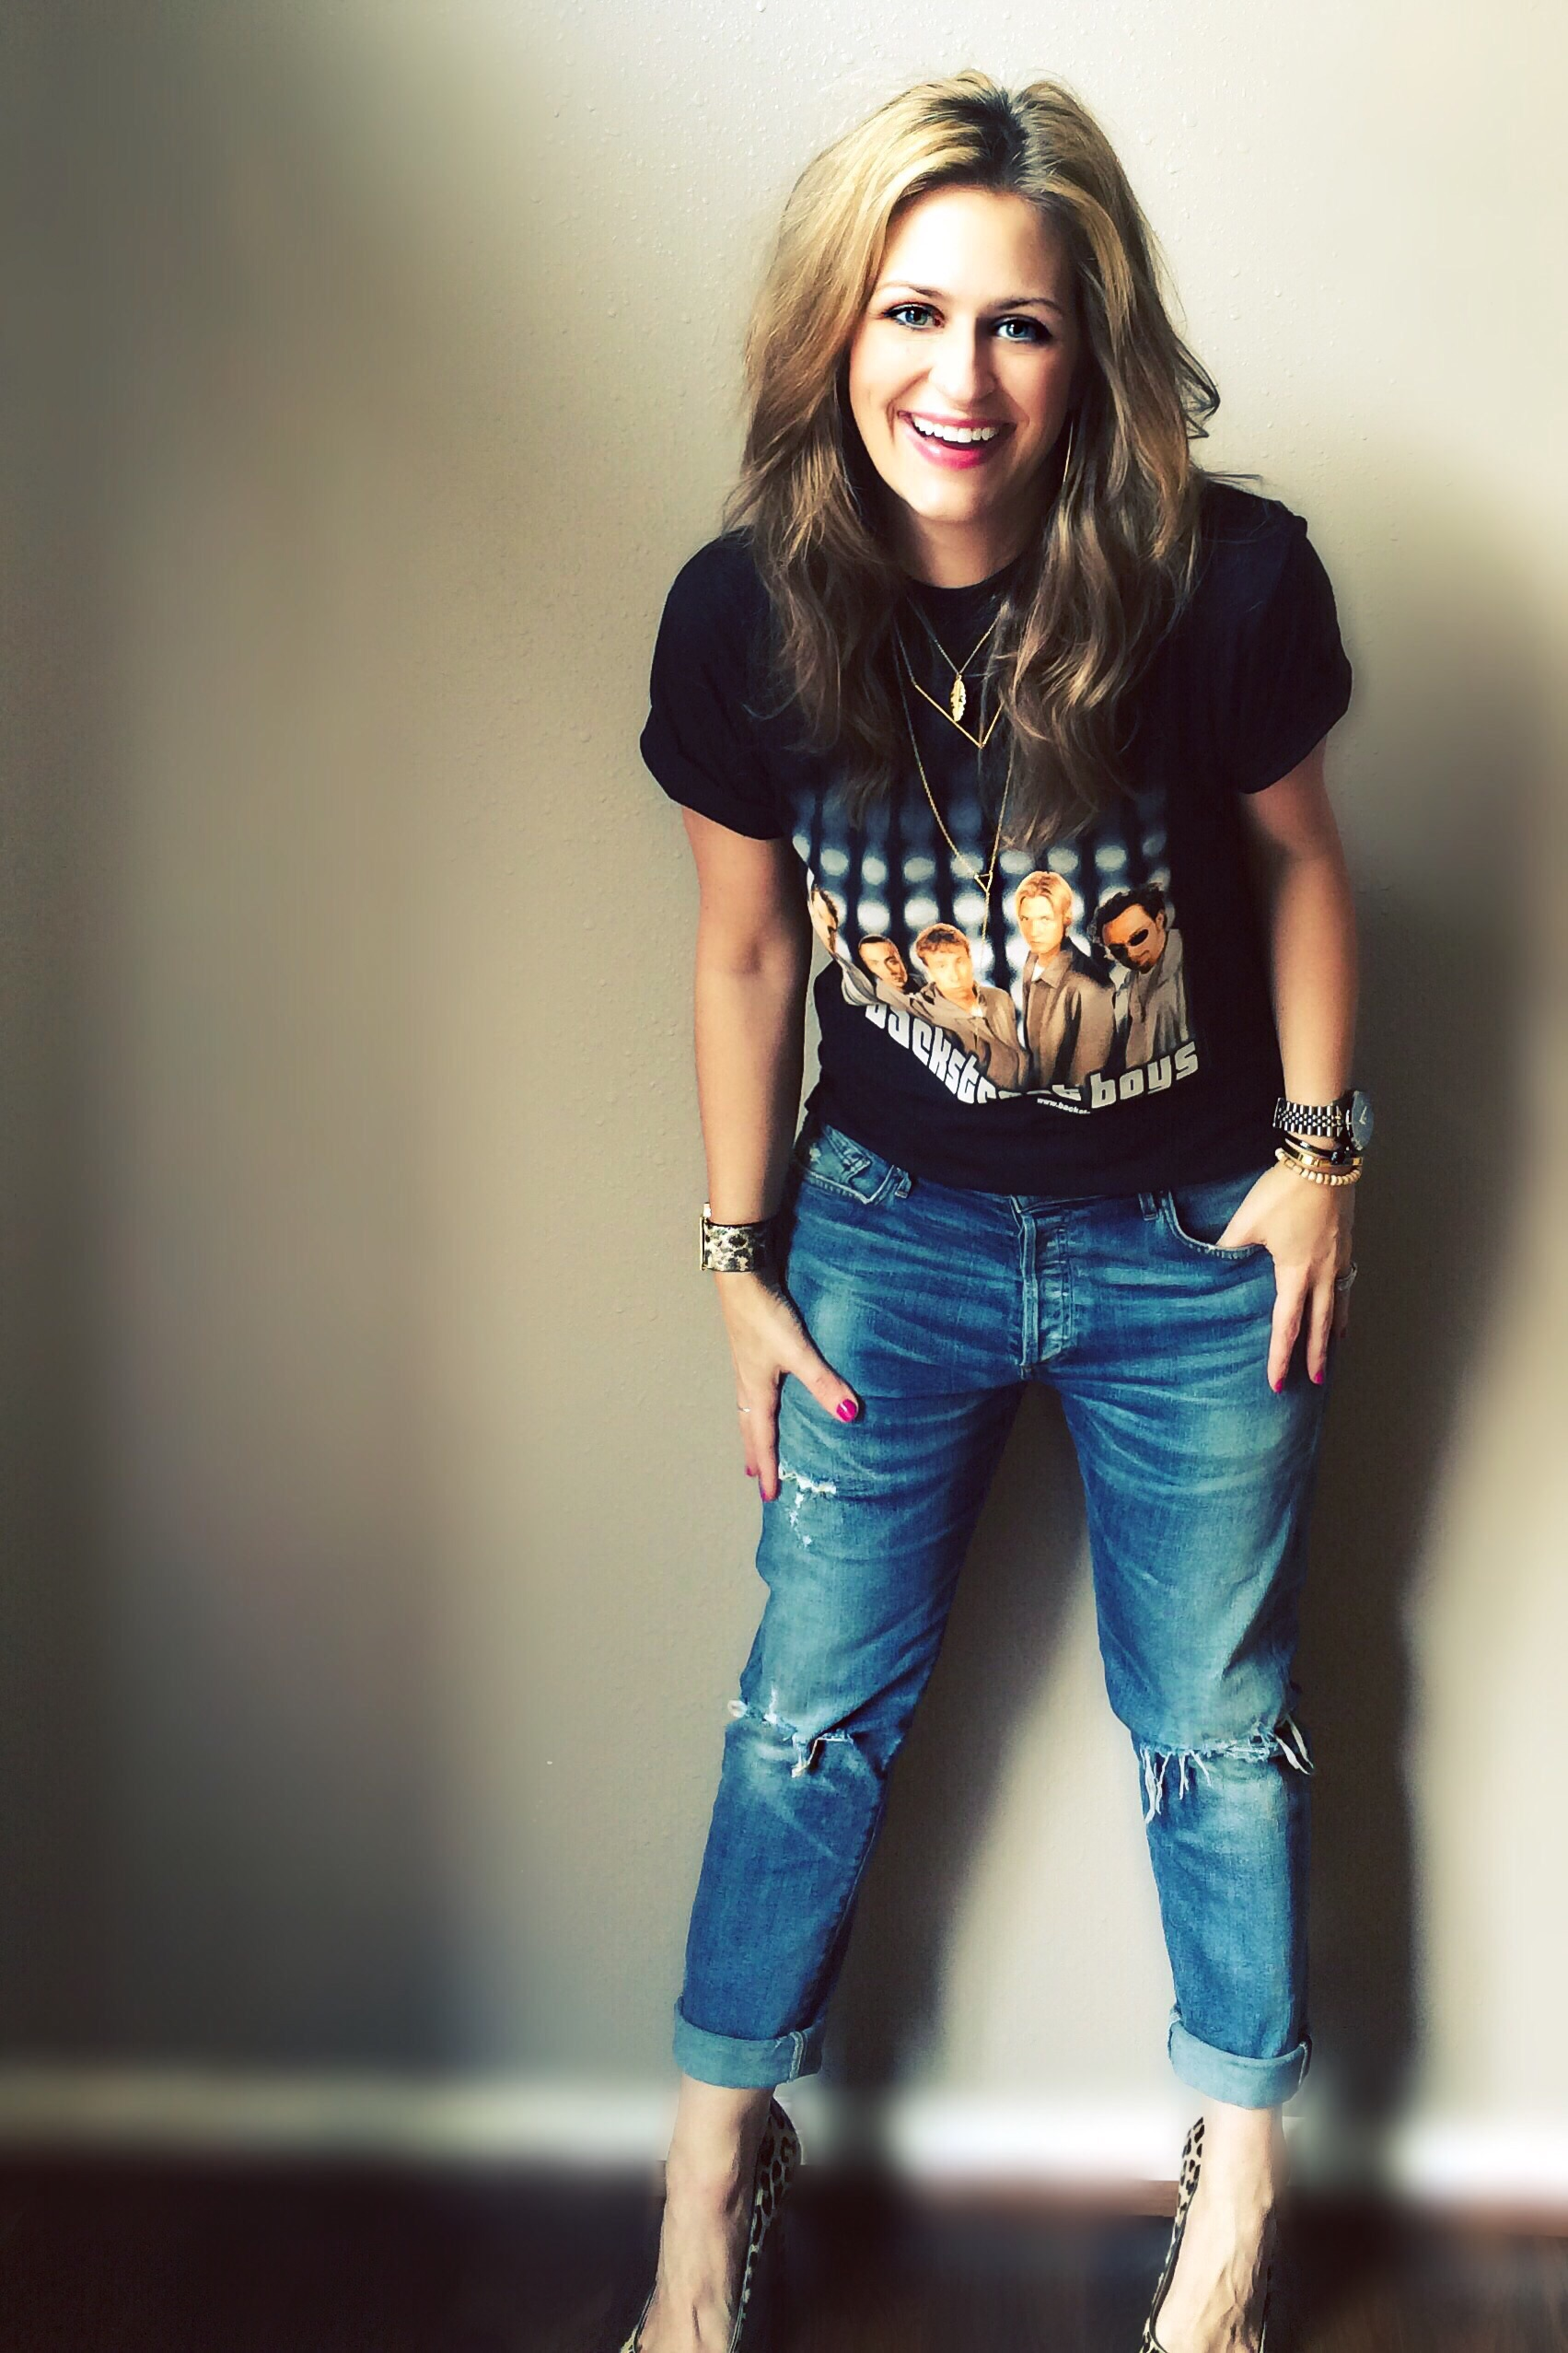 Wearing my absolute favoriteclassic vintage Backstreet Boys tee- this love is here to stay- with my new favorite Citizens of Humanity jeans. You can purchase them  here .